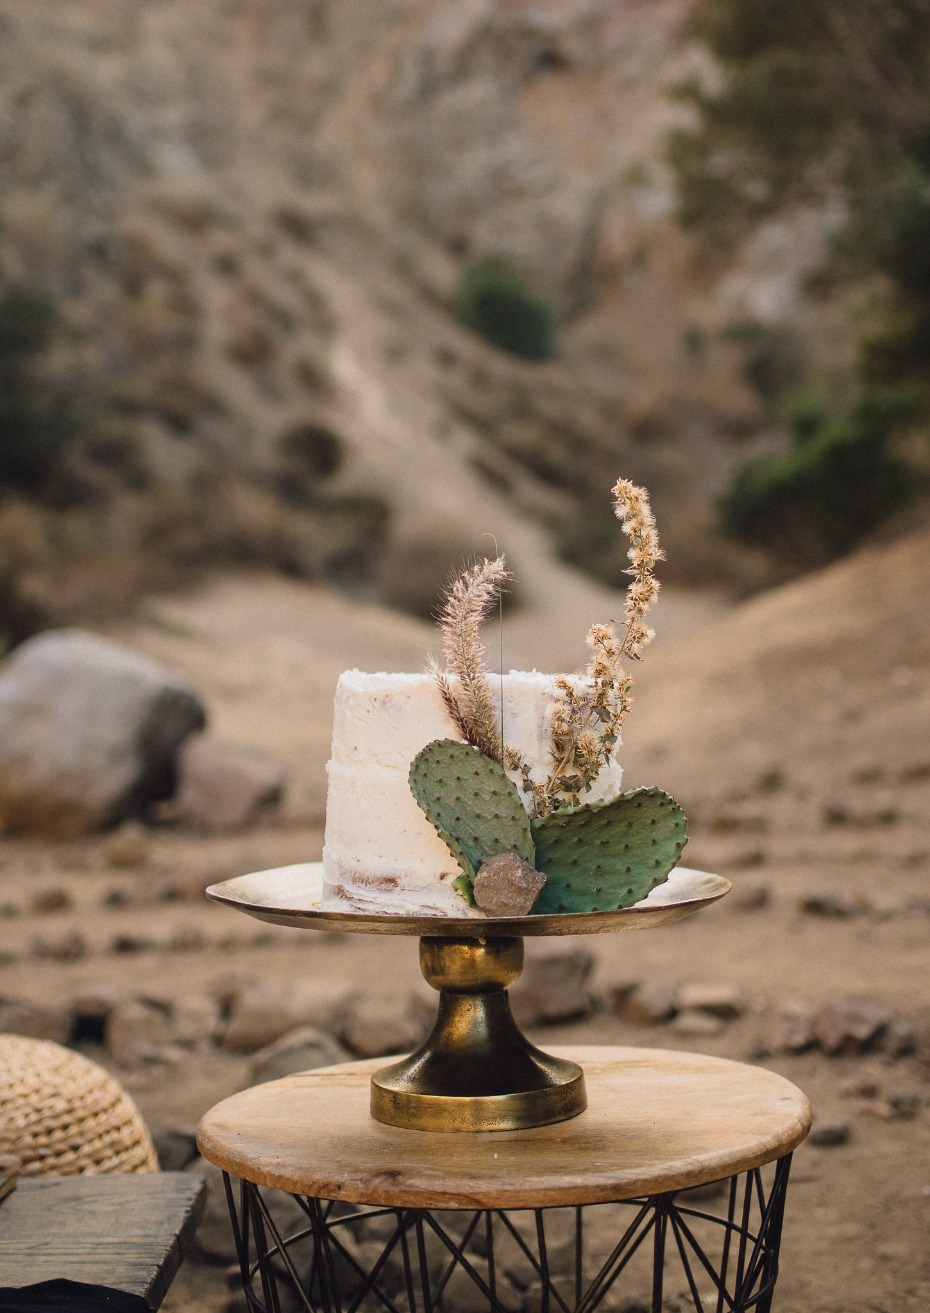 White wedding cake with cactus paddles